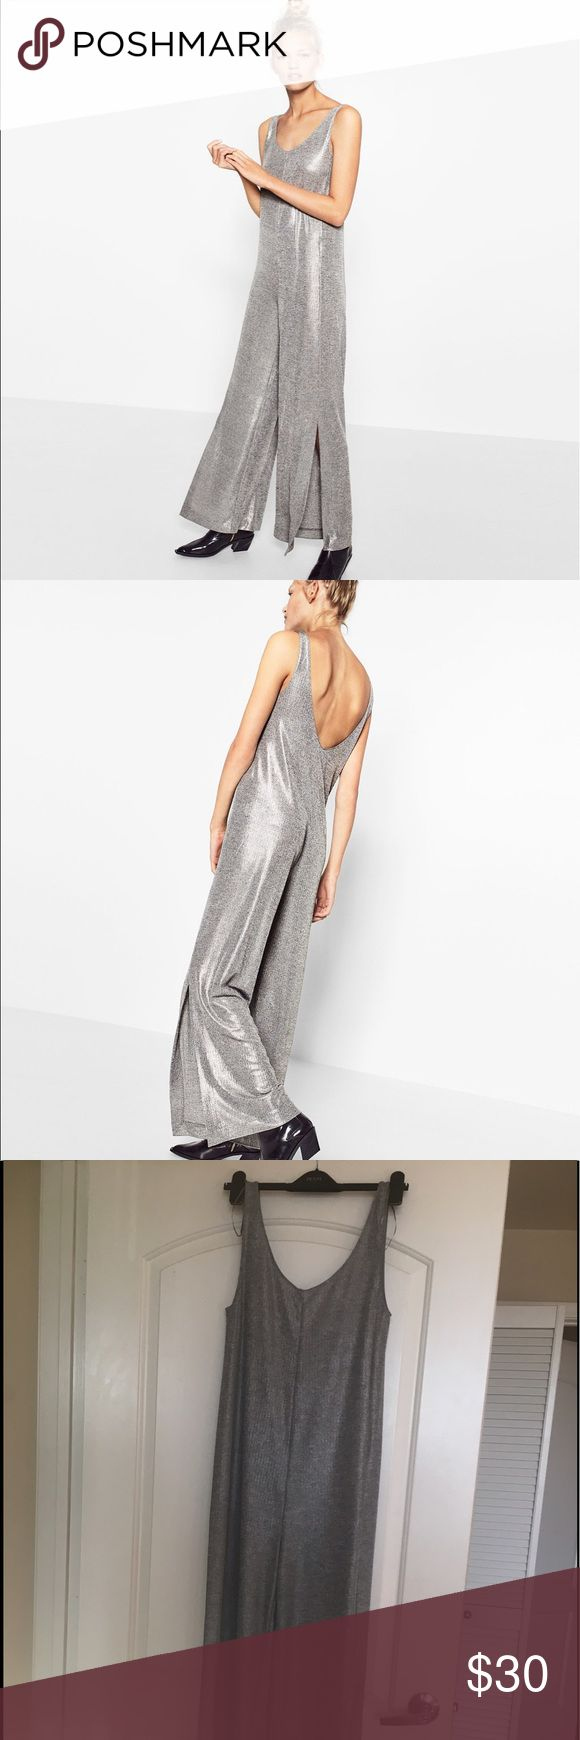 Sexy Zara silver jumpsuit. BRAND NEW WITH TAGS. Sexy, relaxed fit jumpsuit. Bought it in two sizes and this is the one I never wore. Looks amazing cinched with a belt, too. Zara Pants Jumpsuits & Rompers